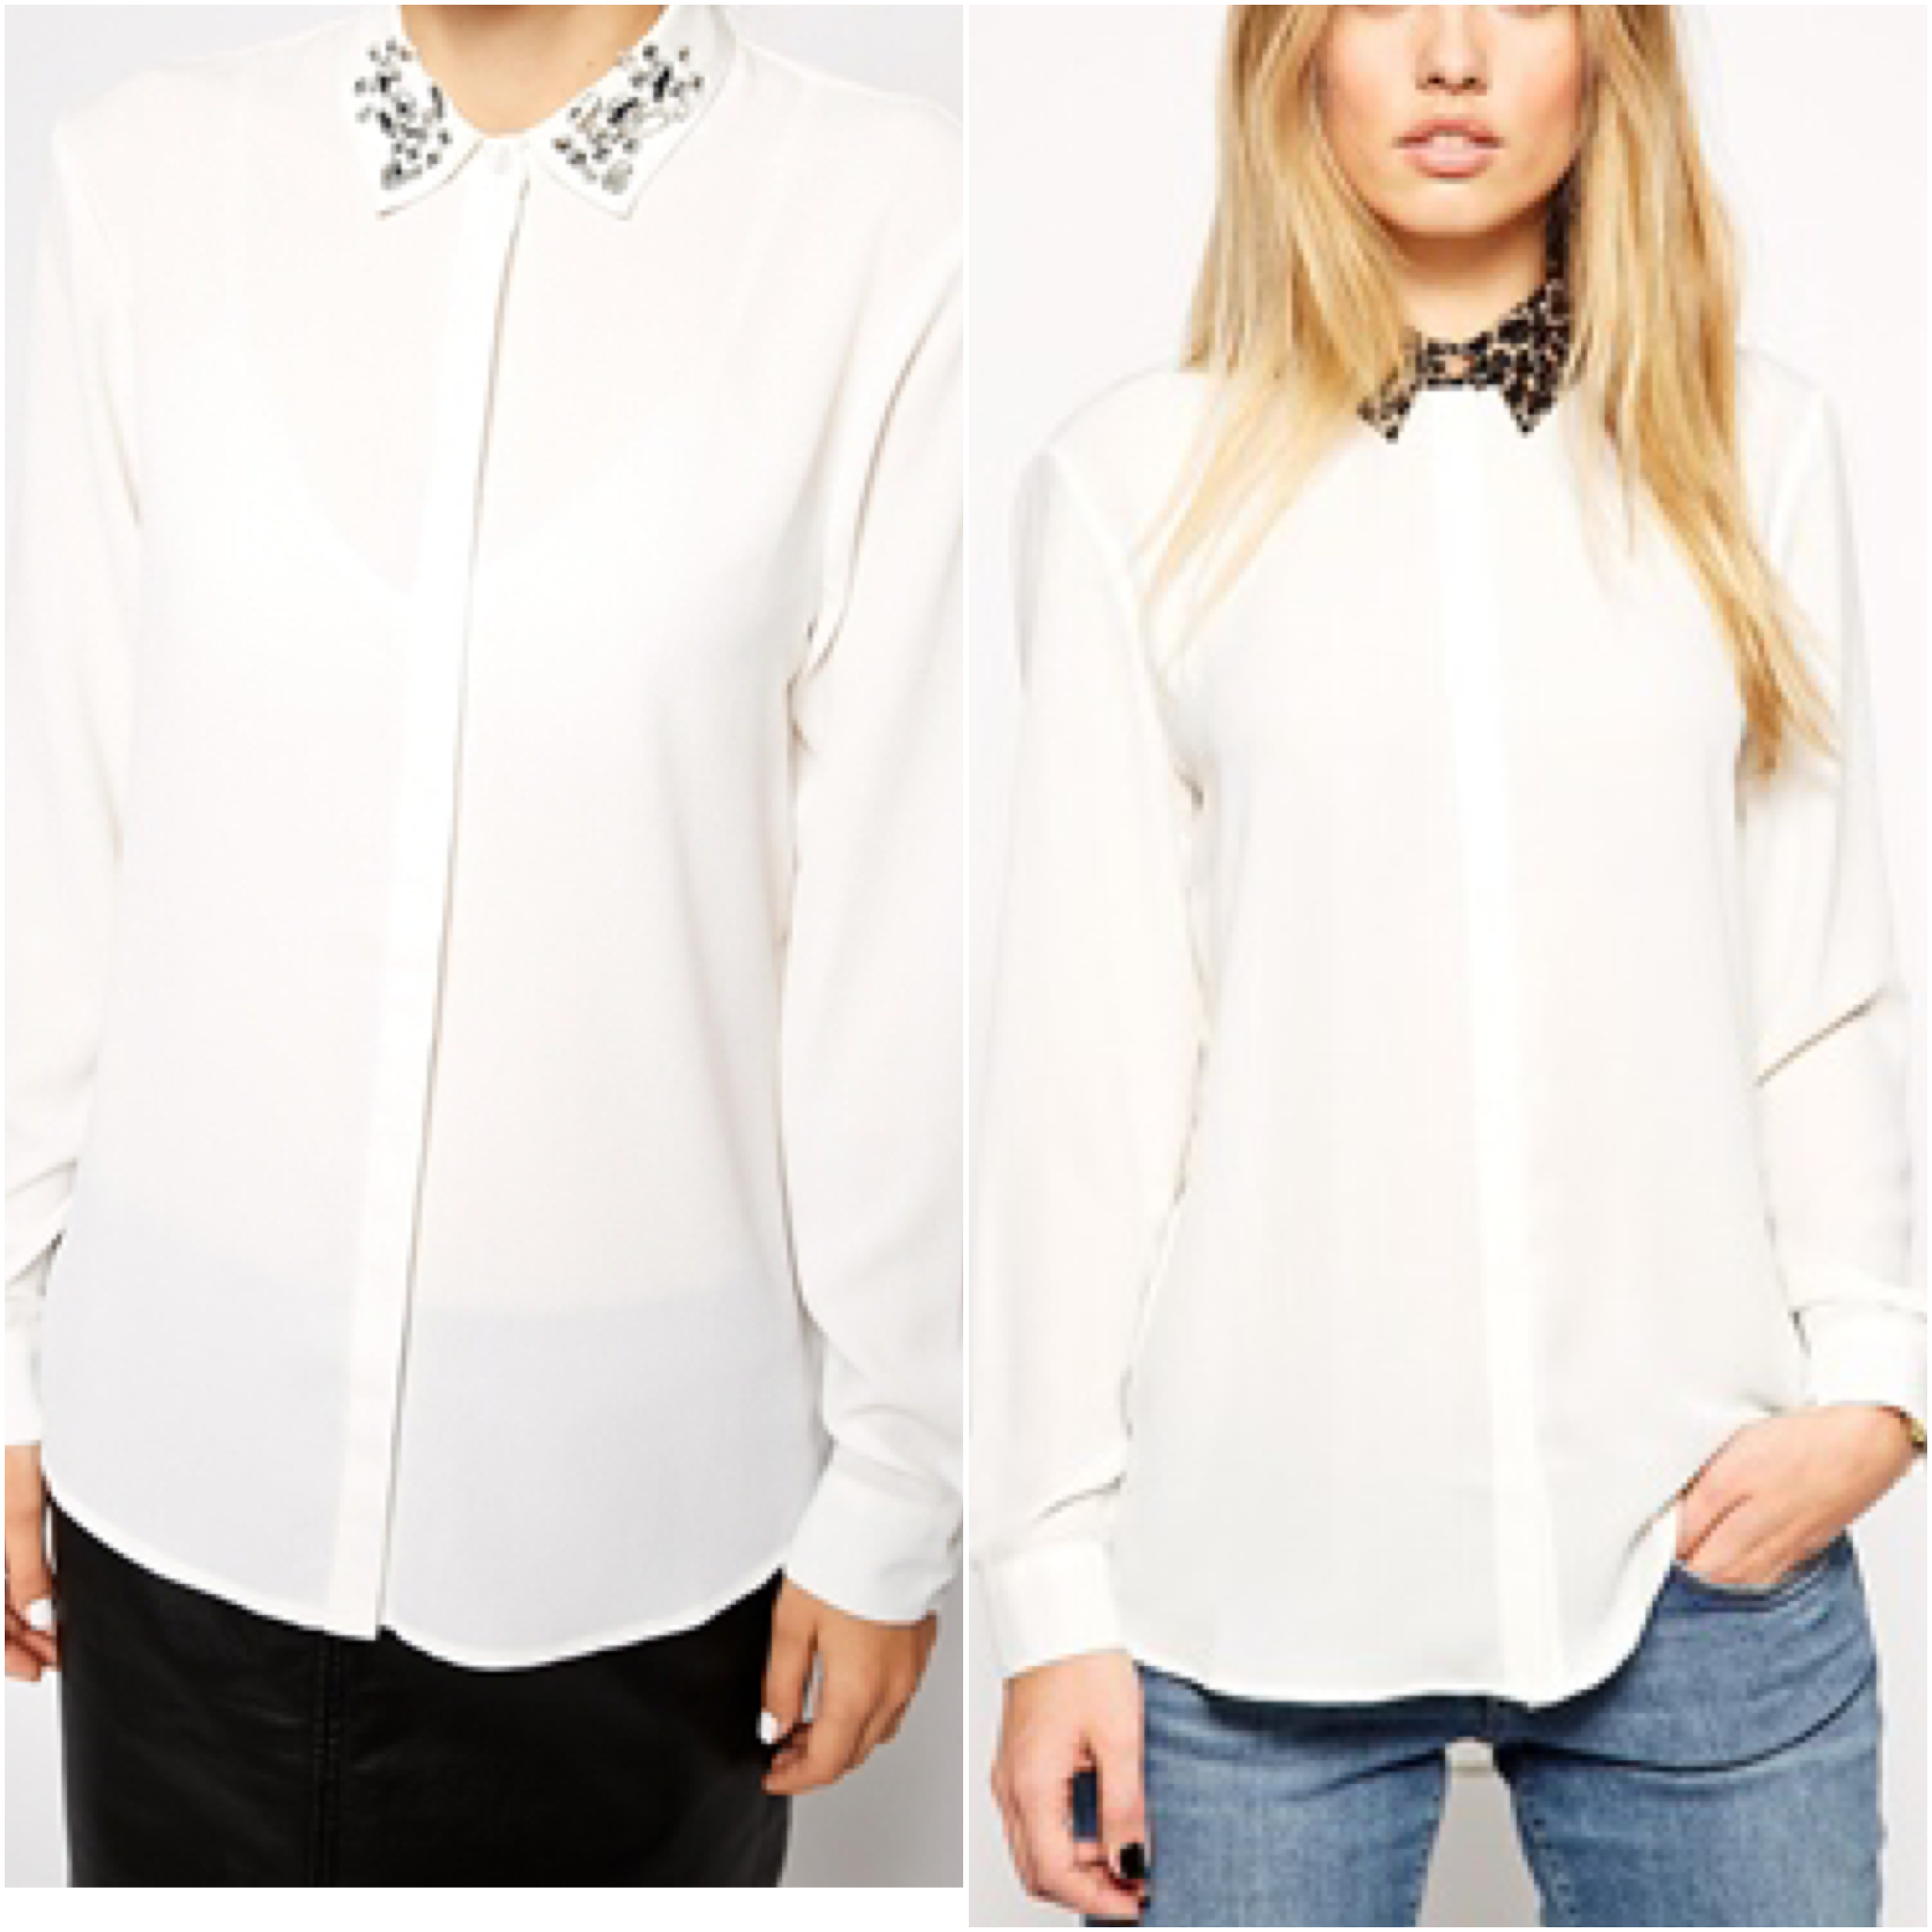 ASOS Blouse with Embellished Collar and ASOS PETITE Blouse with Leopard Collar